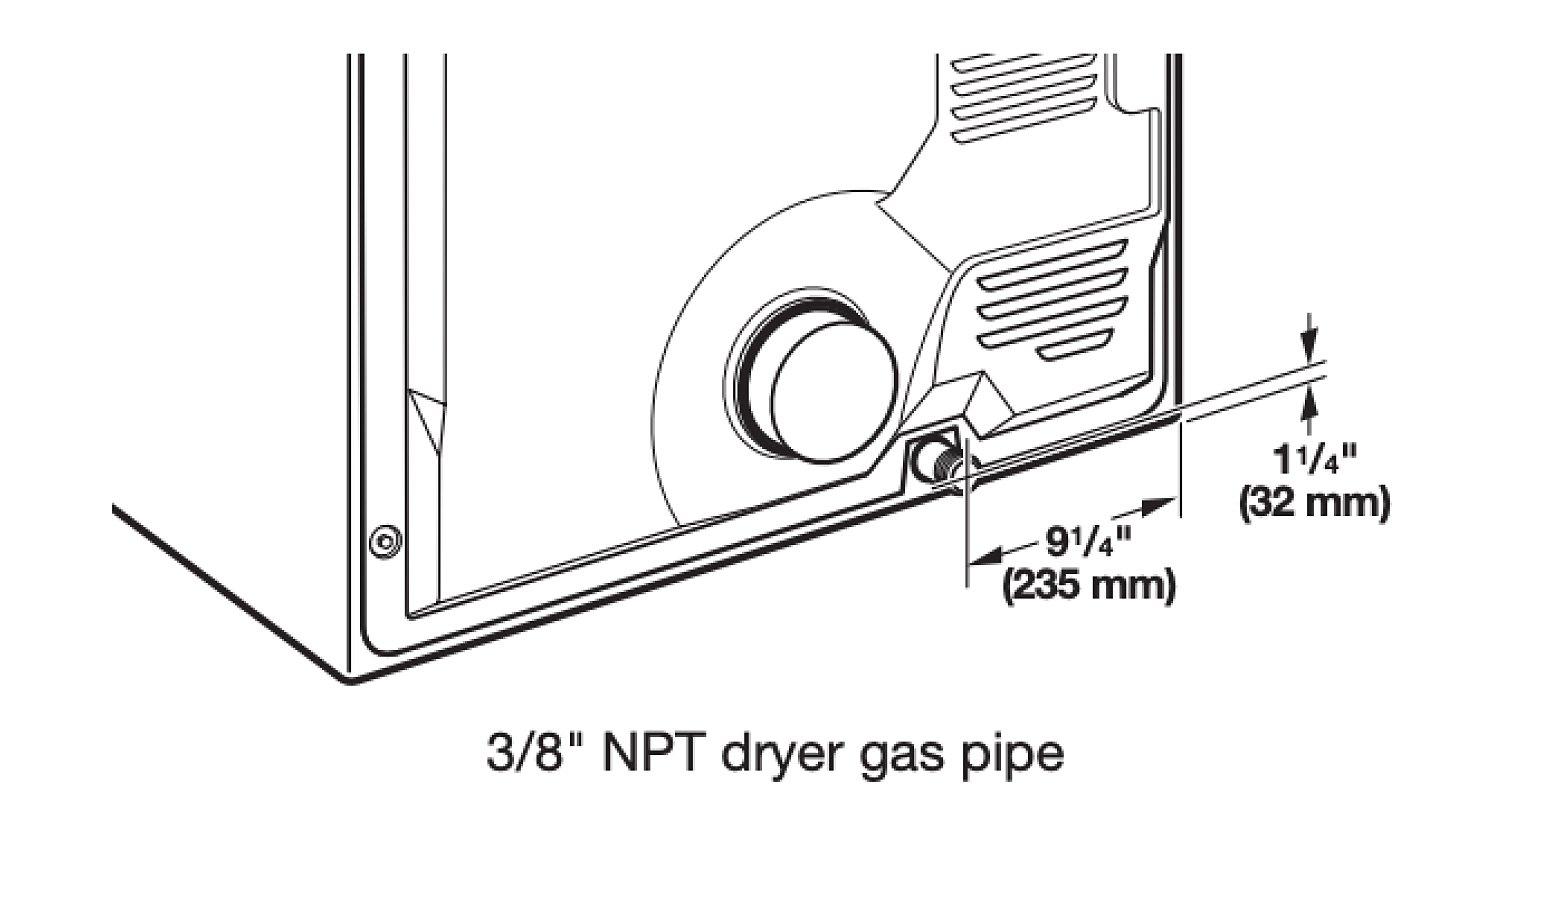 A diagram showing the back of a gas dryer.